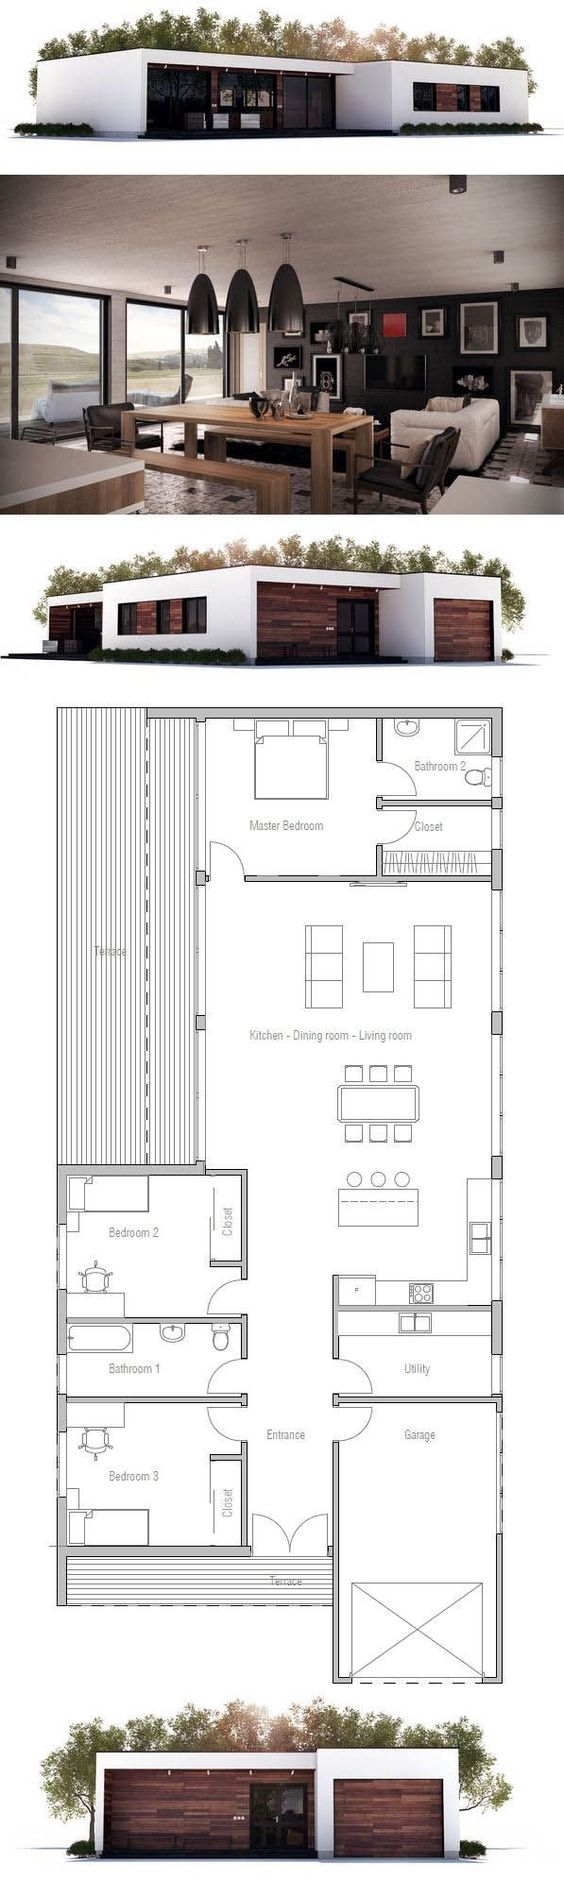 Single storey home flat roof future vertical expansion 6 social side - Single Storied Flat Roof House Less Than 3000sqft Keralahousedesigner Com Pinterest Flat Roof House And Flat Roof